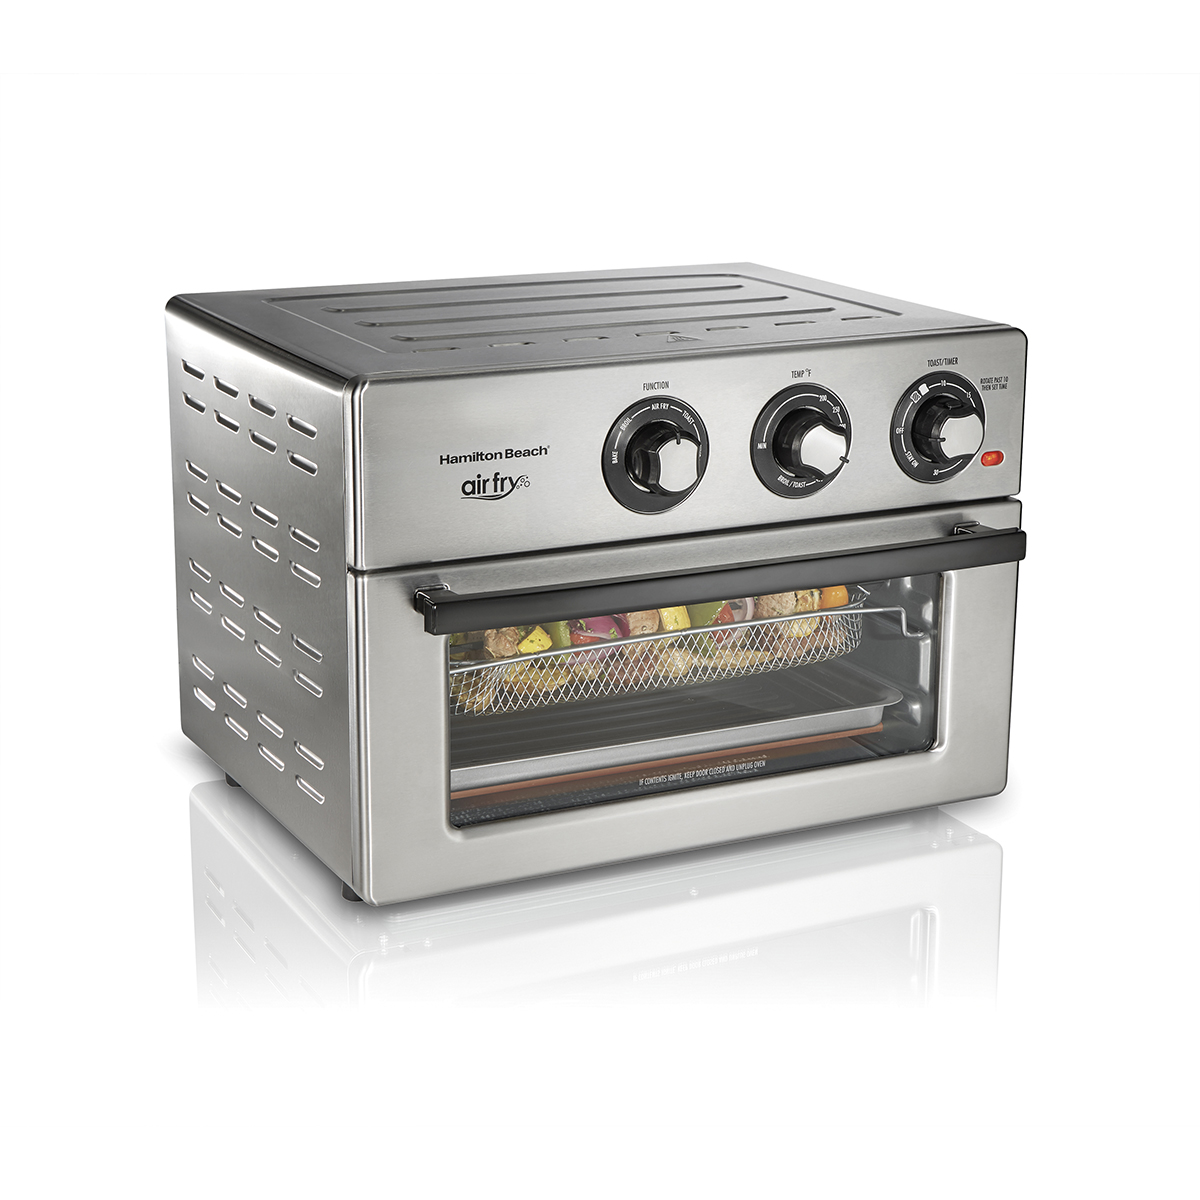 Air Fry Countertop Oven (31225)